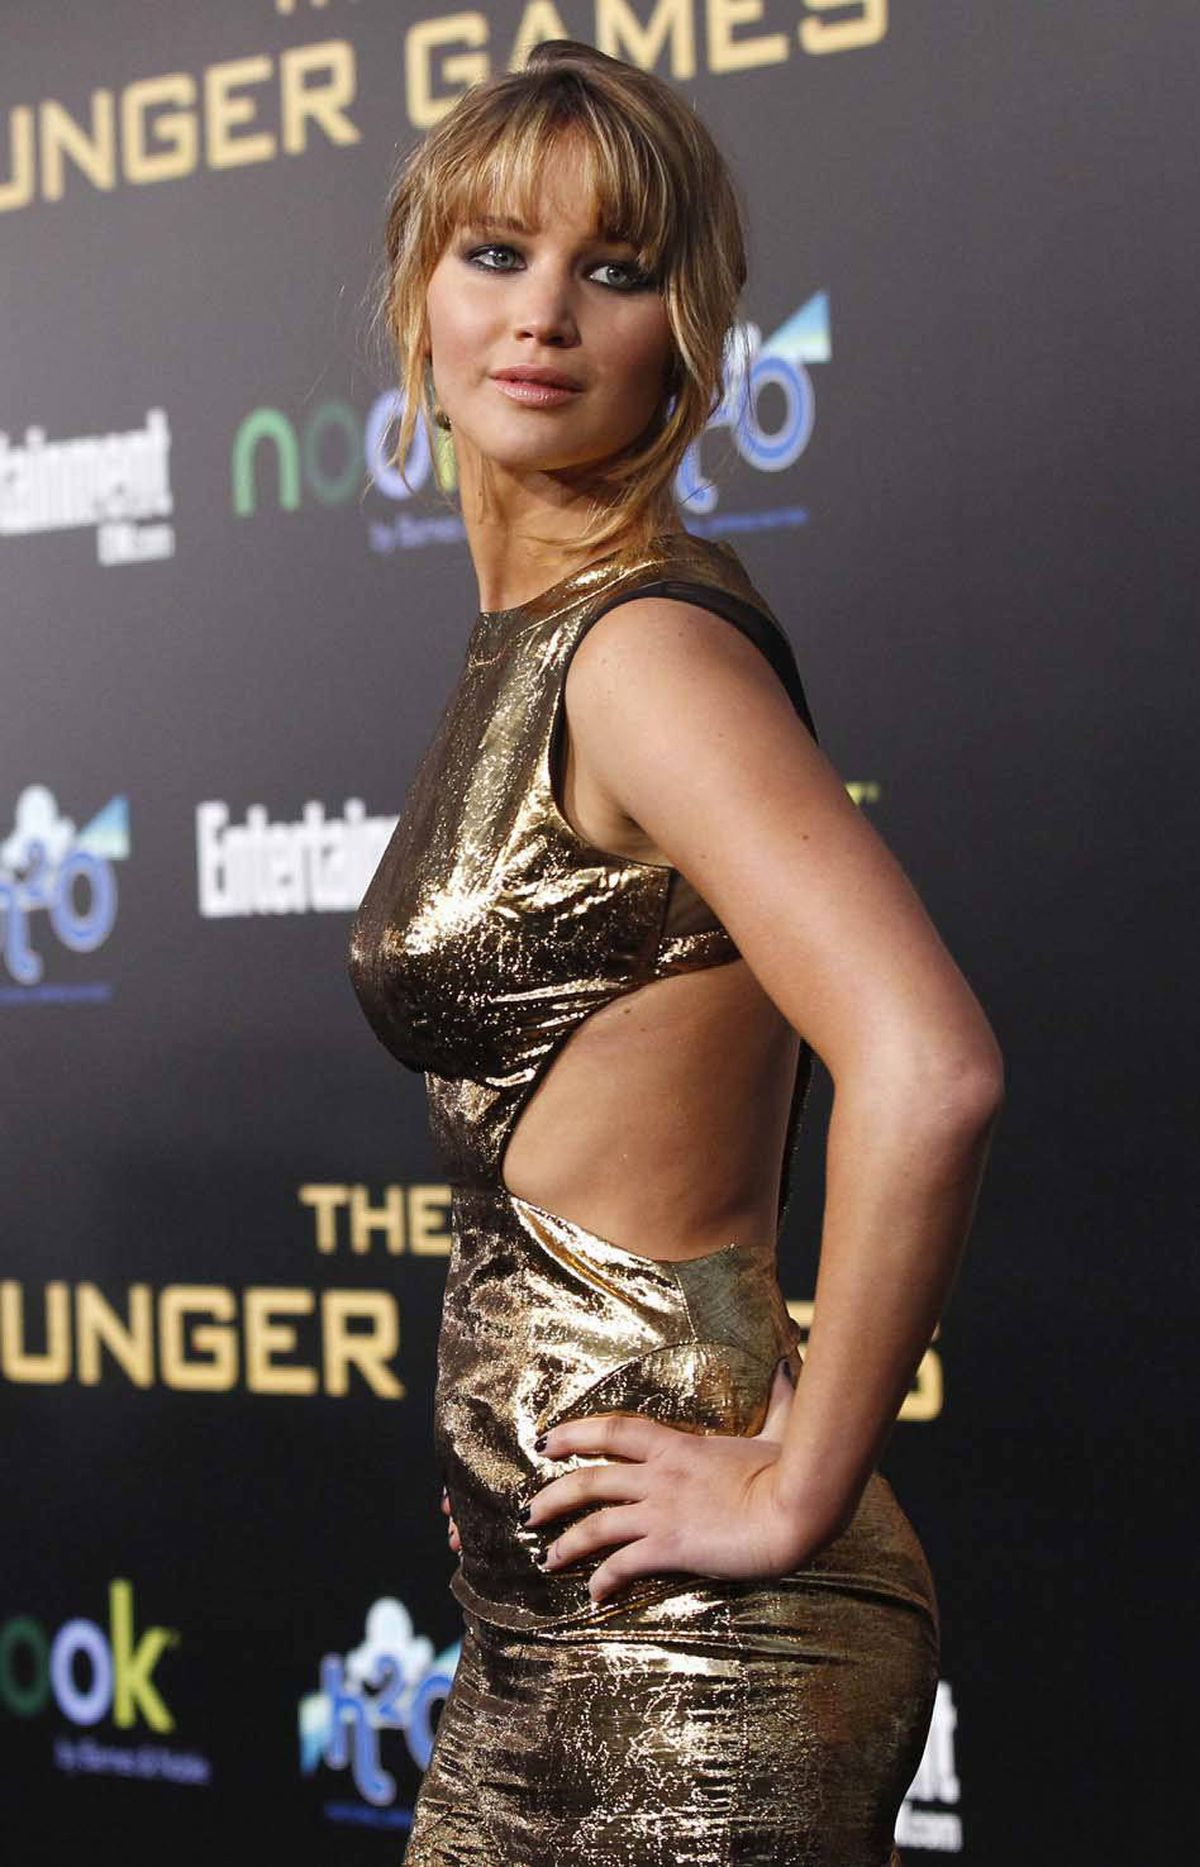 """Jennifer Lawrence channels Barbarella at the premiere of """"The Hunger Games"""" in Los Angeles on Monday."""